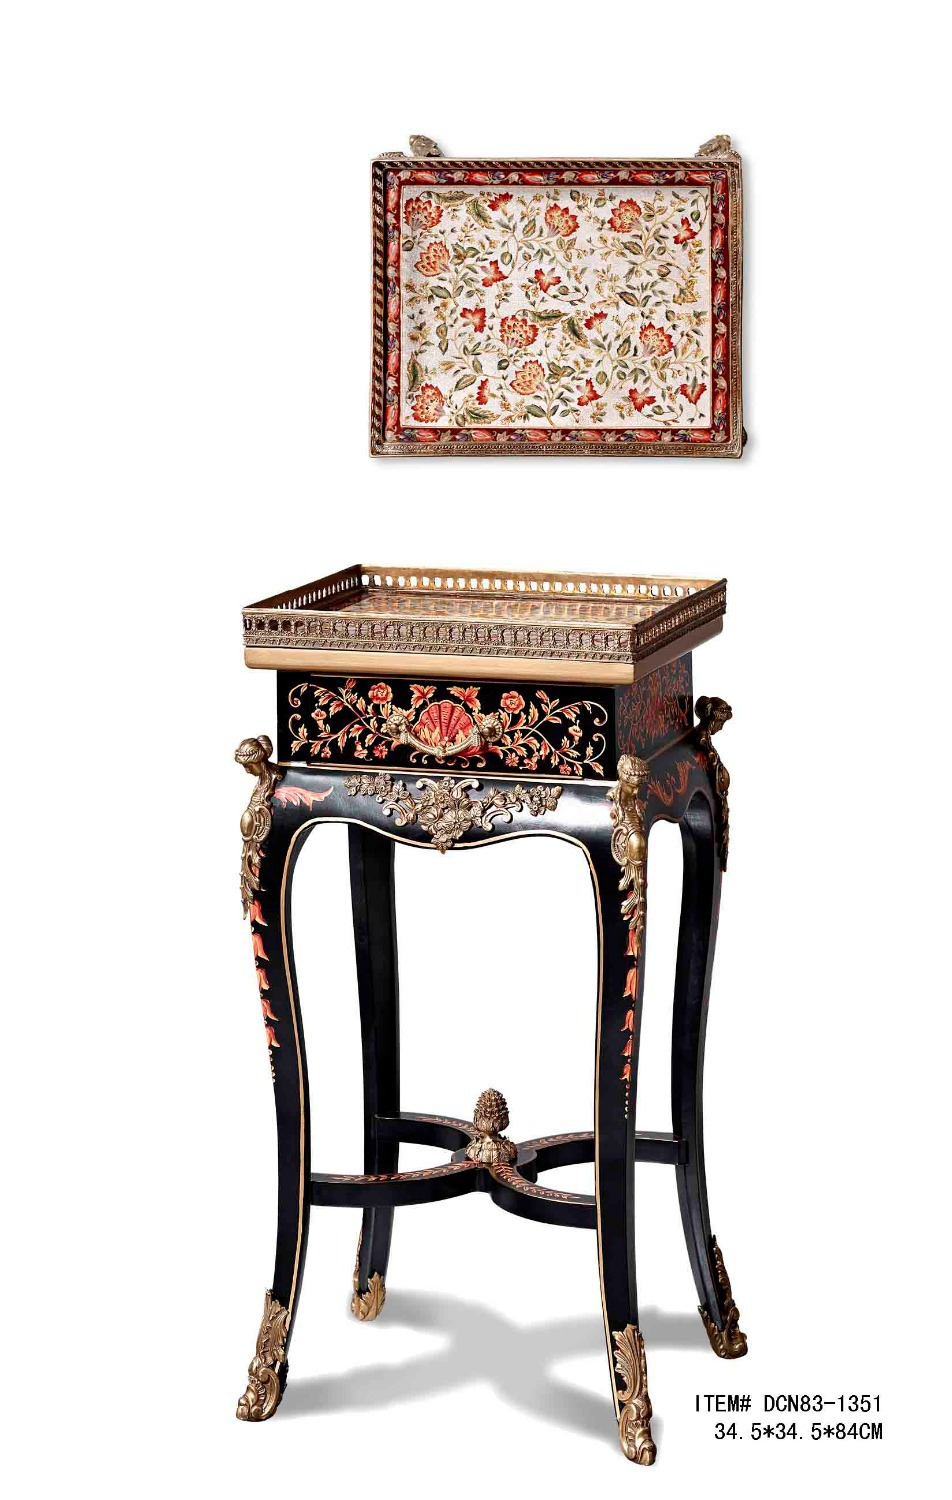 European Style Antique Porcelain and Wood Console Table Side Table Luxury Ceramic Decor